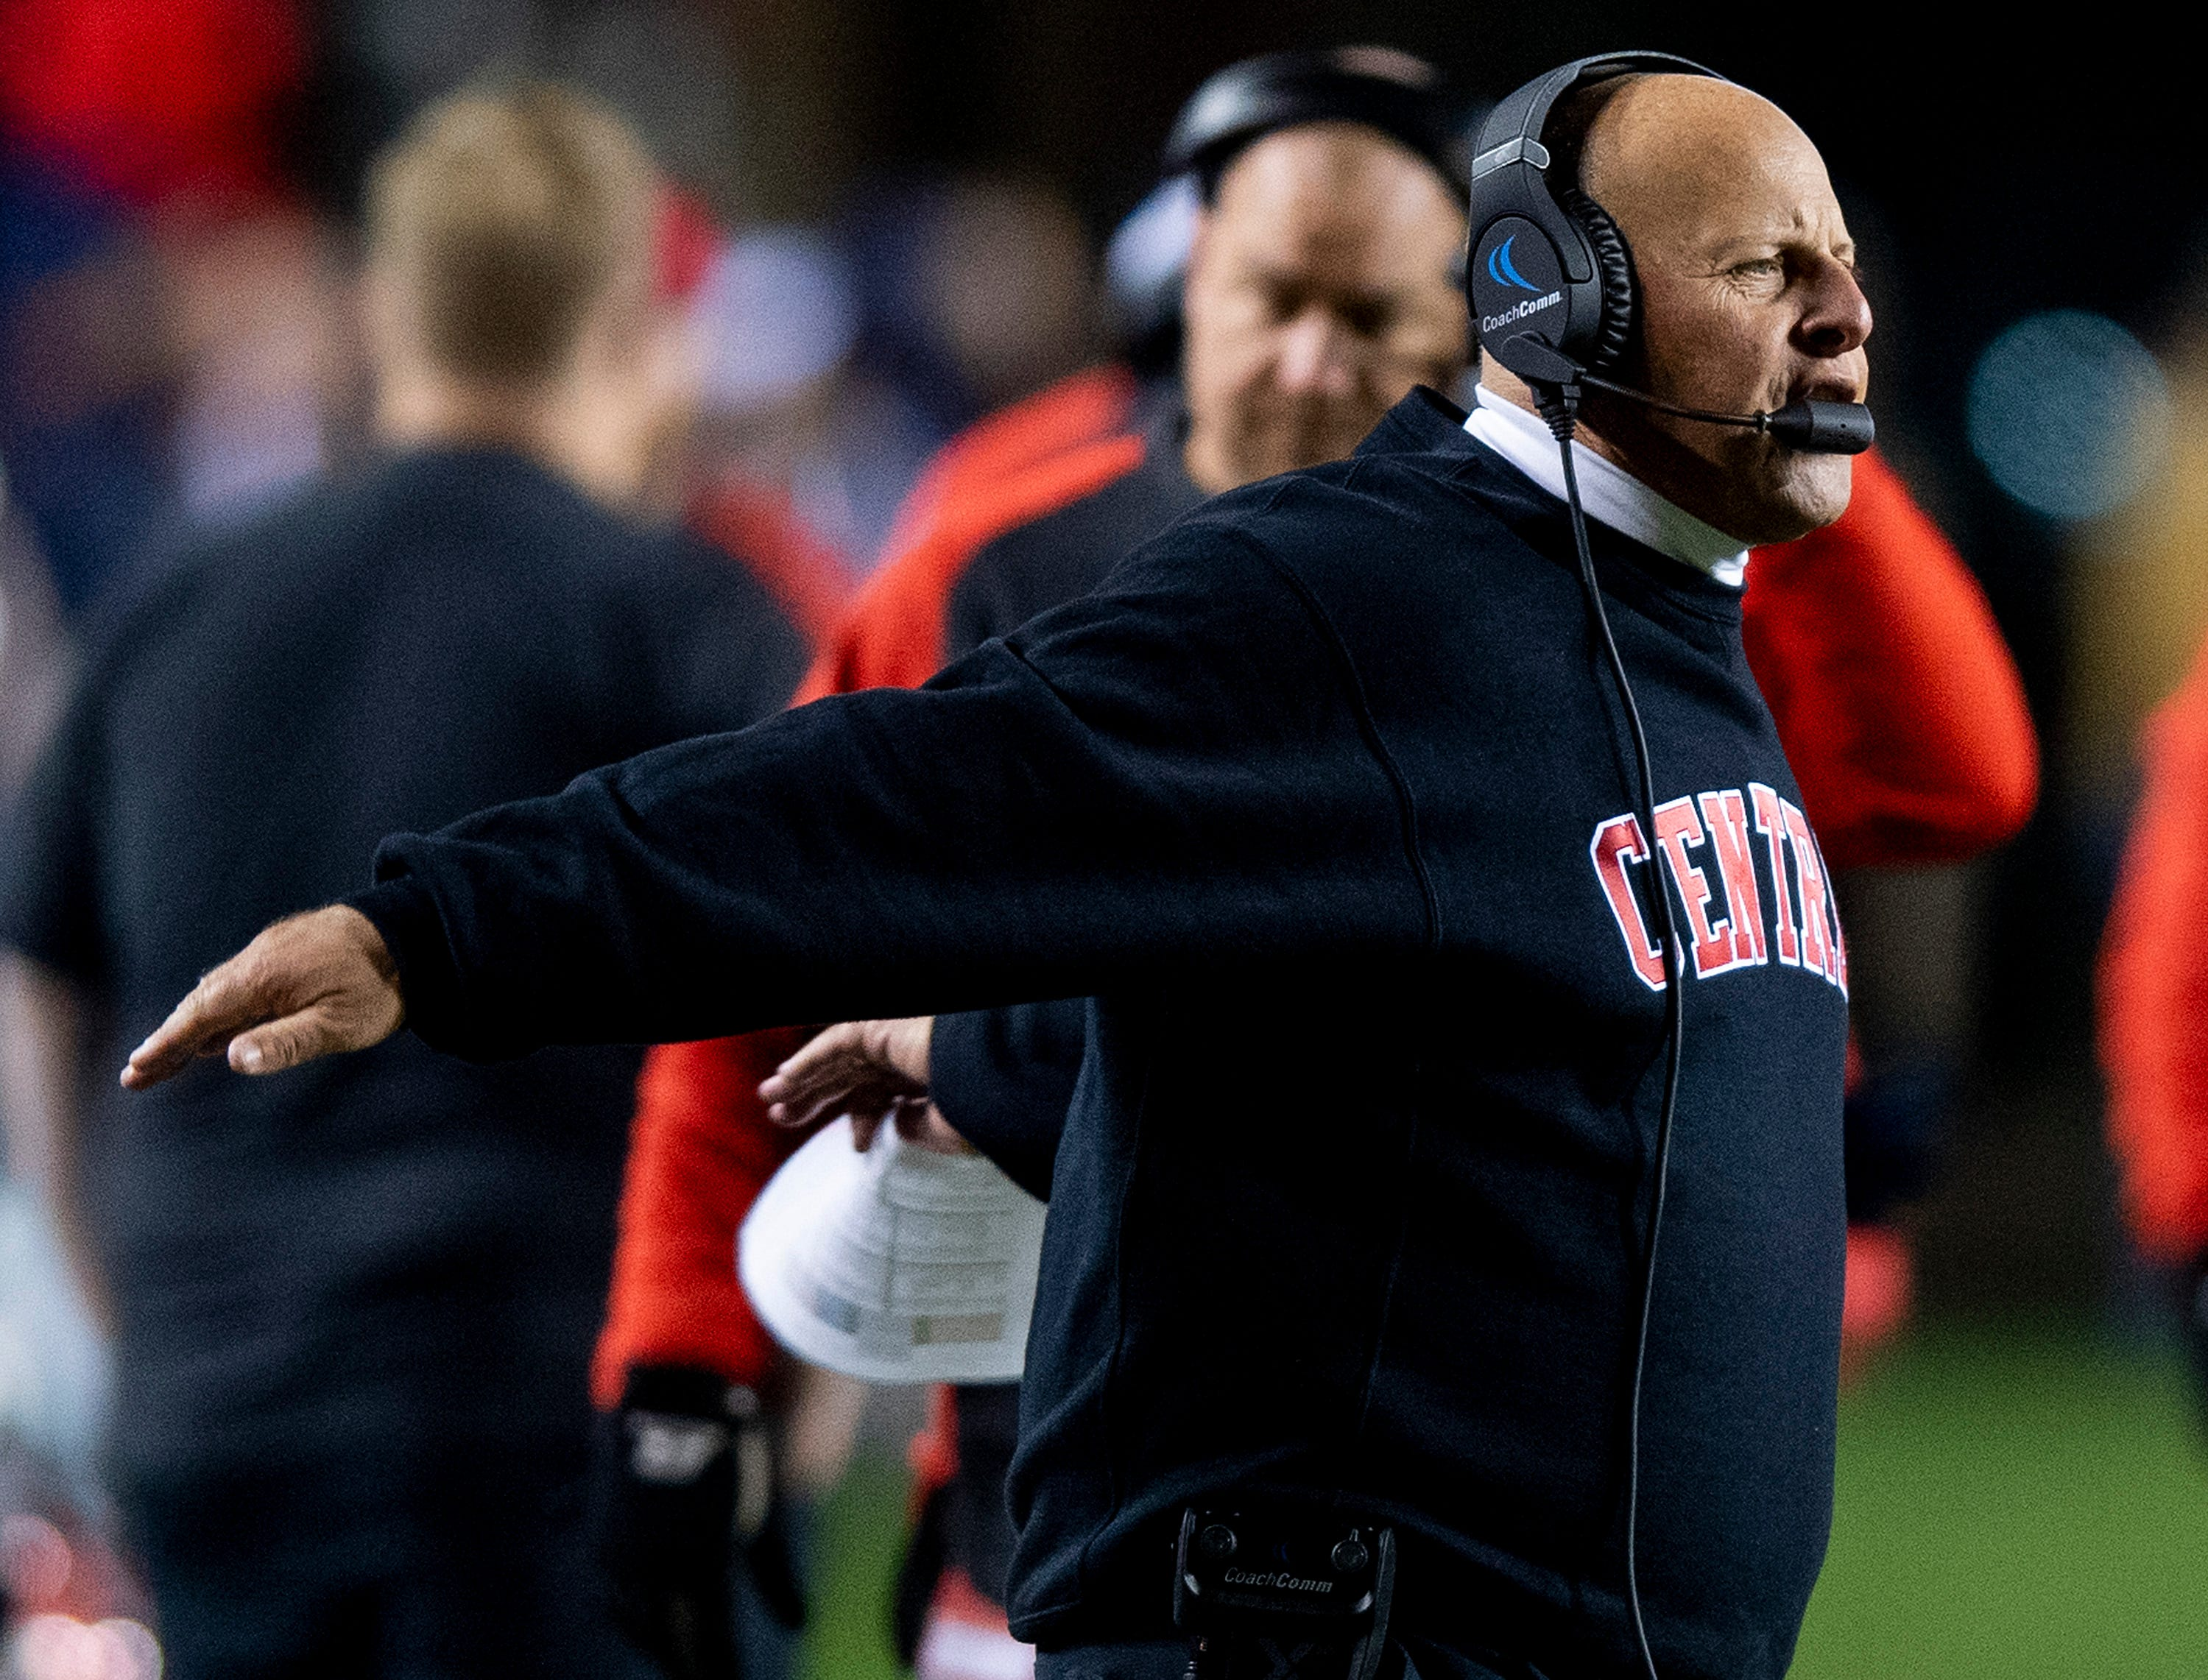 Central-Phenix City coach Jamey DuBose during the AHSAA Class 7A State Championship Football Game at Jordan Hare Stadium in Auburn, Ala., on Wednesday evening December 5, 2018.